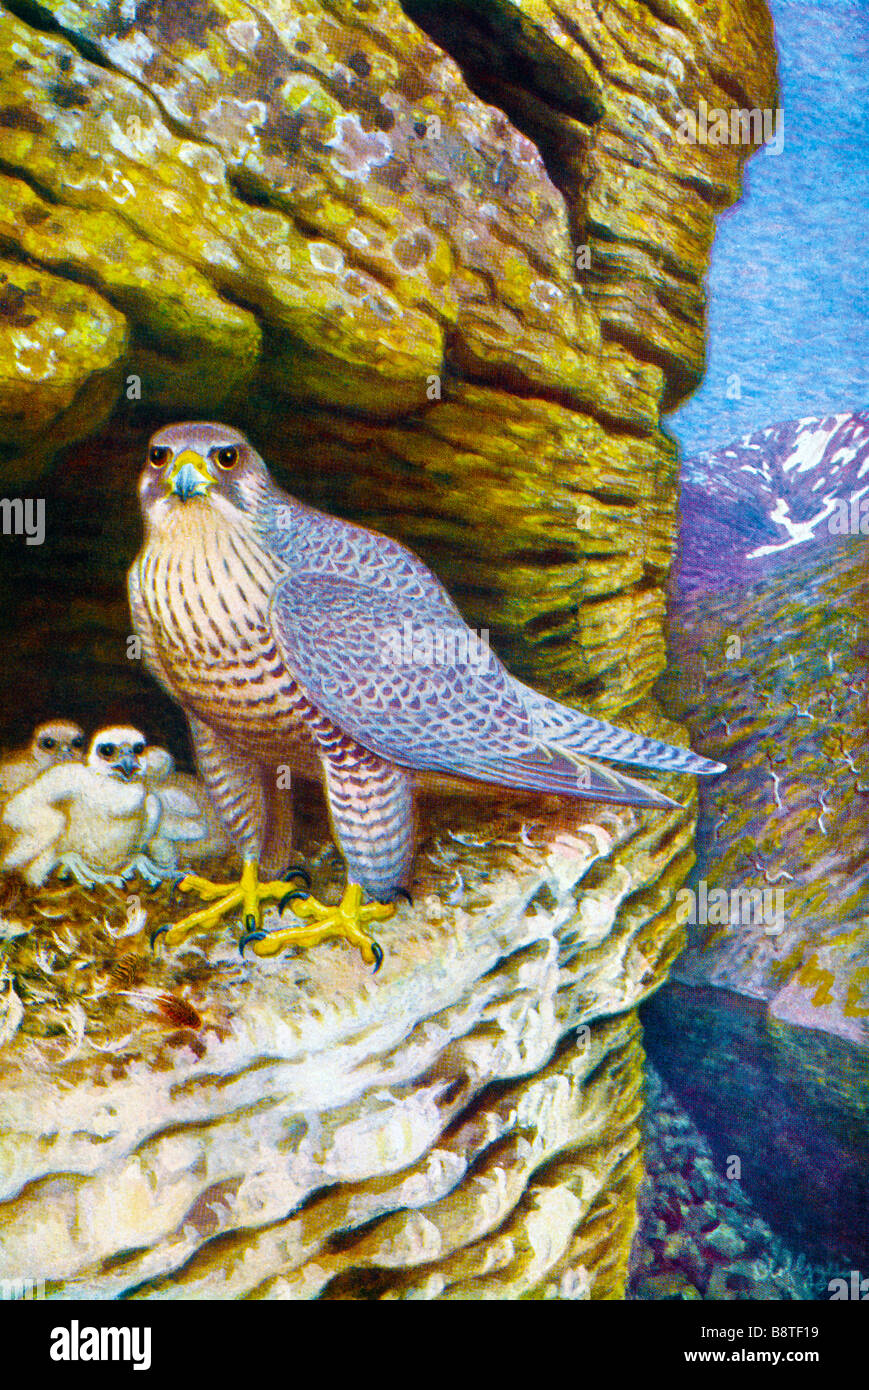 The gyrfalcon (Falco rusticolus) illustrated by Olof Gylling (1850-1928) Stock Photo